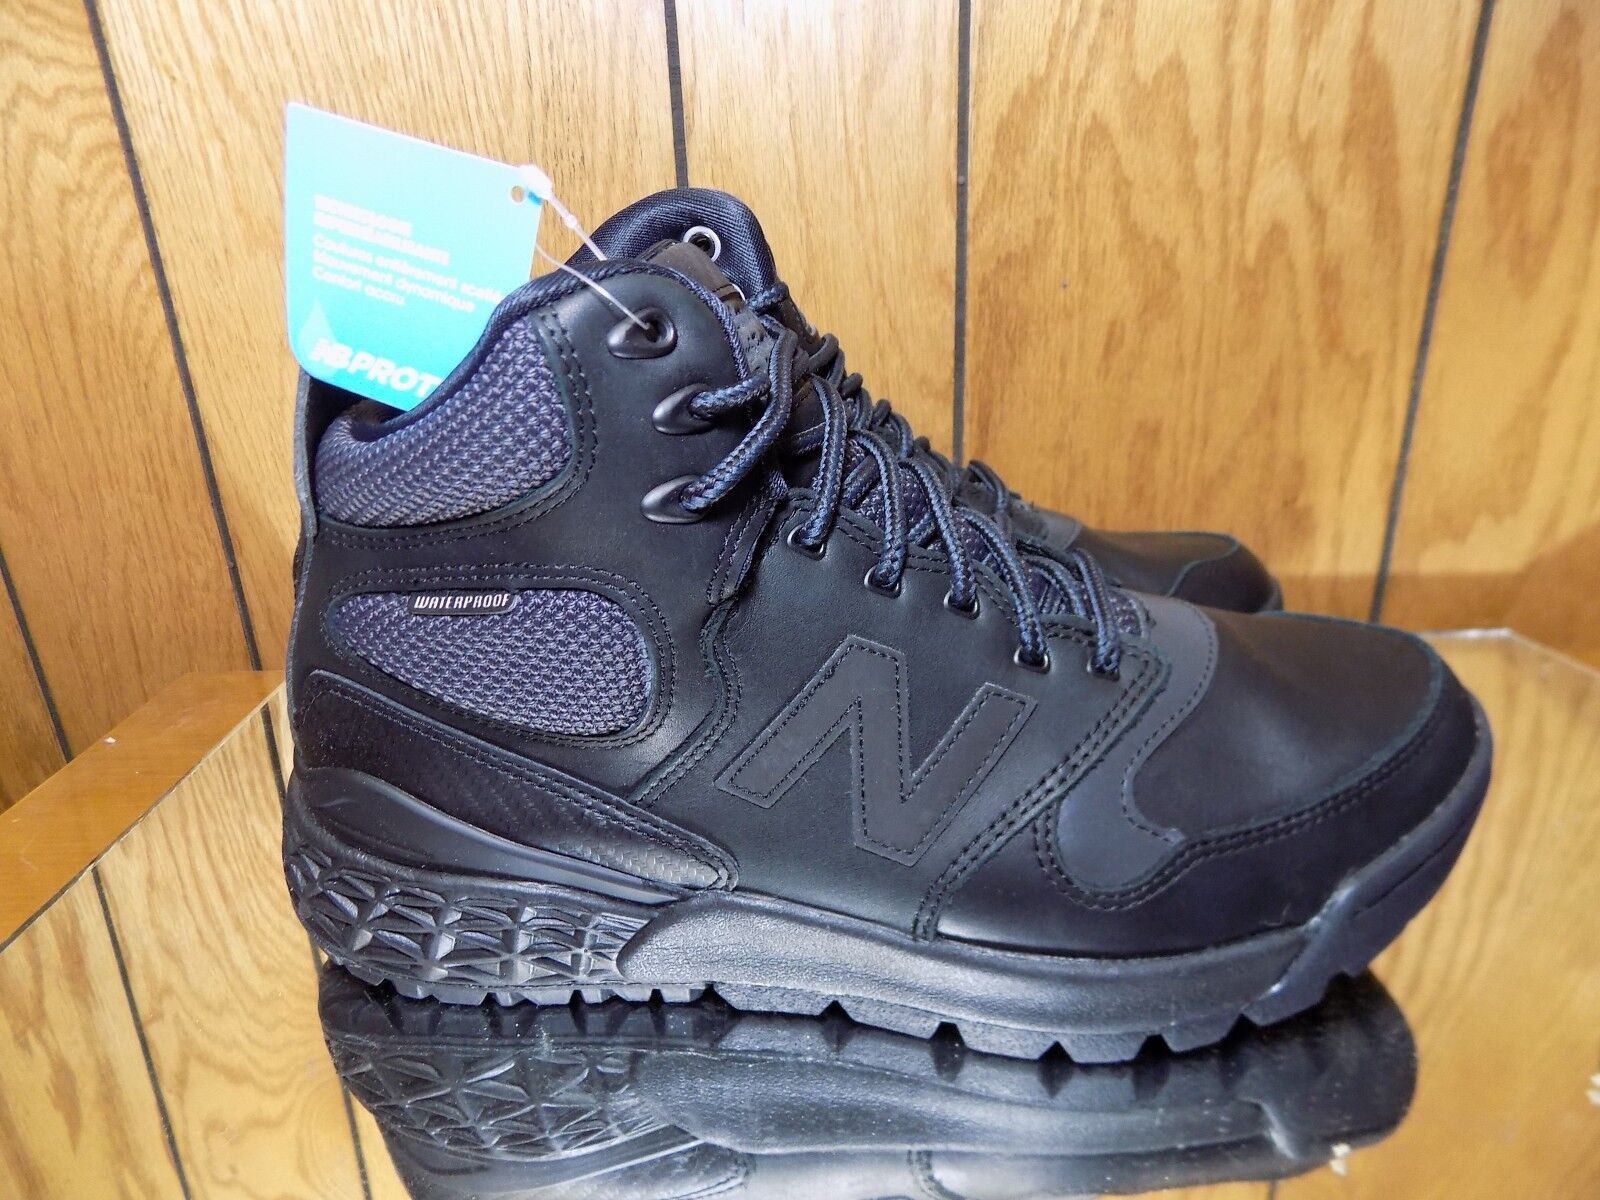 New Balance Men's FRESH FOAM PARADOX LEATHER Shoes Black HFLPXBL s 8